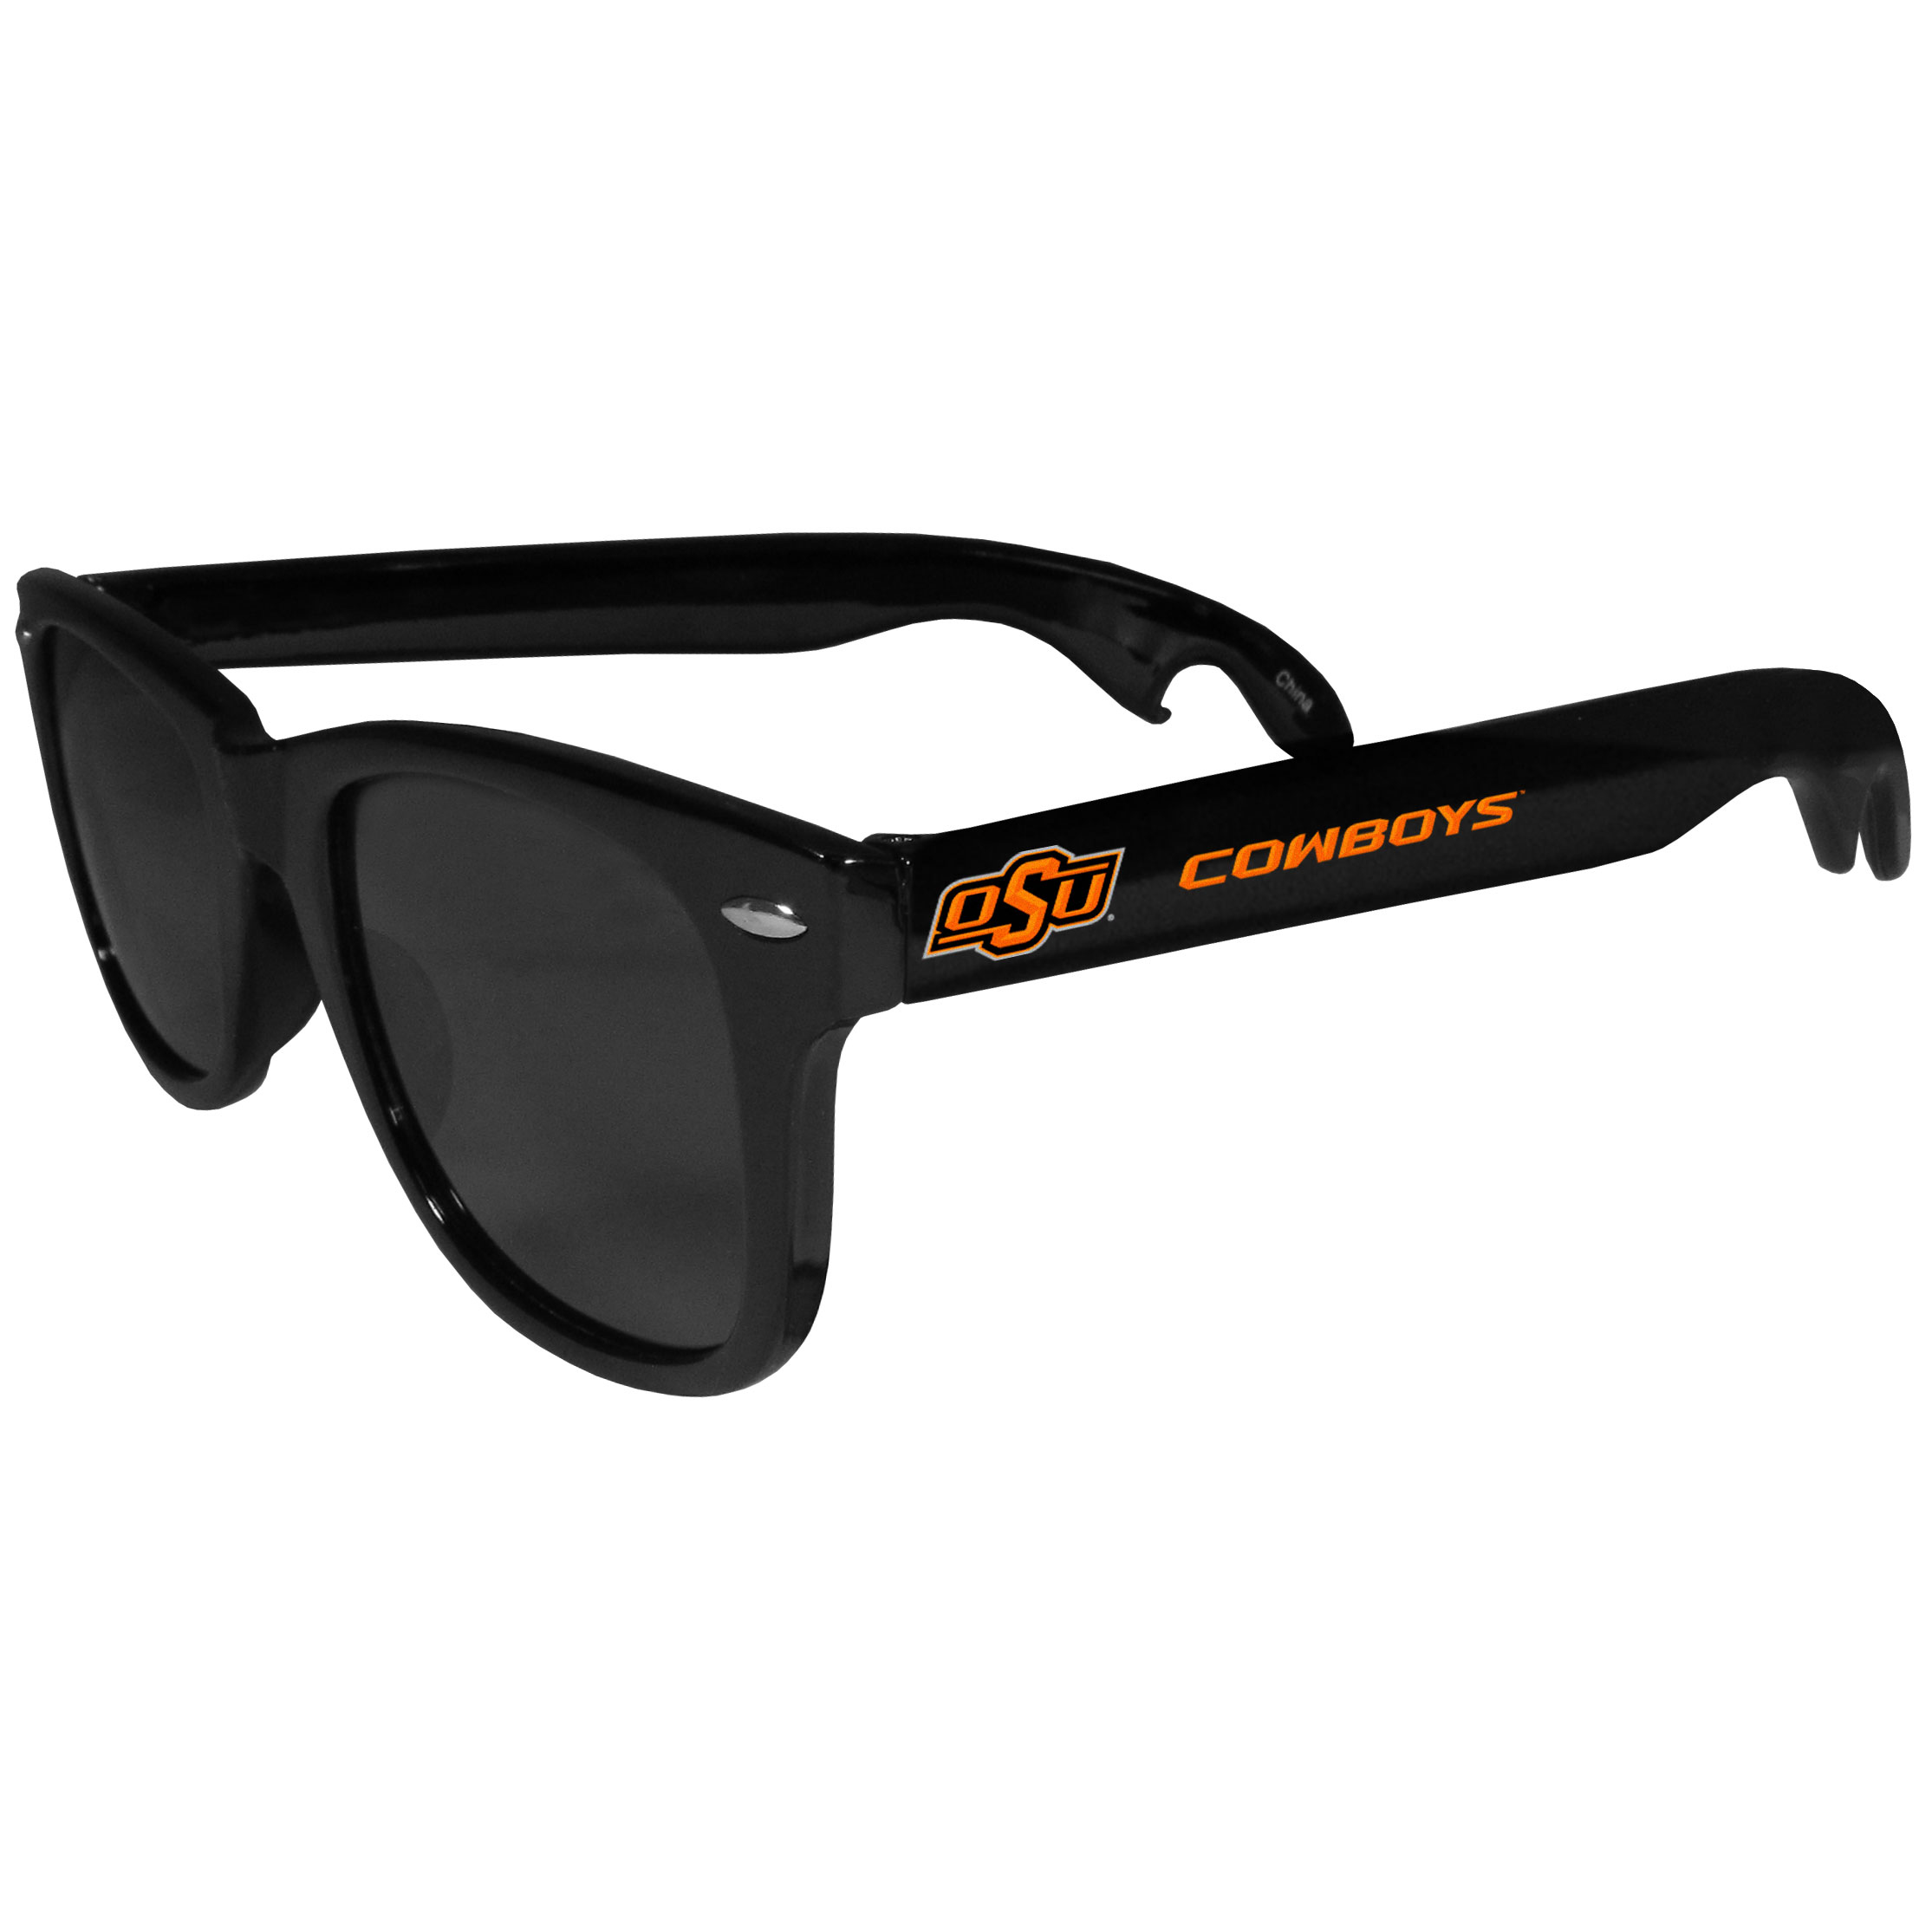 Oklahoma St. Cowboys Beachfarer Bottle Opener Sunglasses - Seriously, these sunglasses open bottles! Keep the party going with these amazing Oklahoma St. Cowboys bottle opener sunglasses. The stylish retro frames feature team designs on the arms and functional bottle openers on the end of the arms. Whether you are at the beach or having a backyard BBQ on game day, these shades will keep your eyes protected with 100% UVA/UVB protection and keep you hydrated with the handy bottle opener arms.